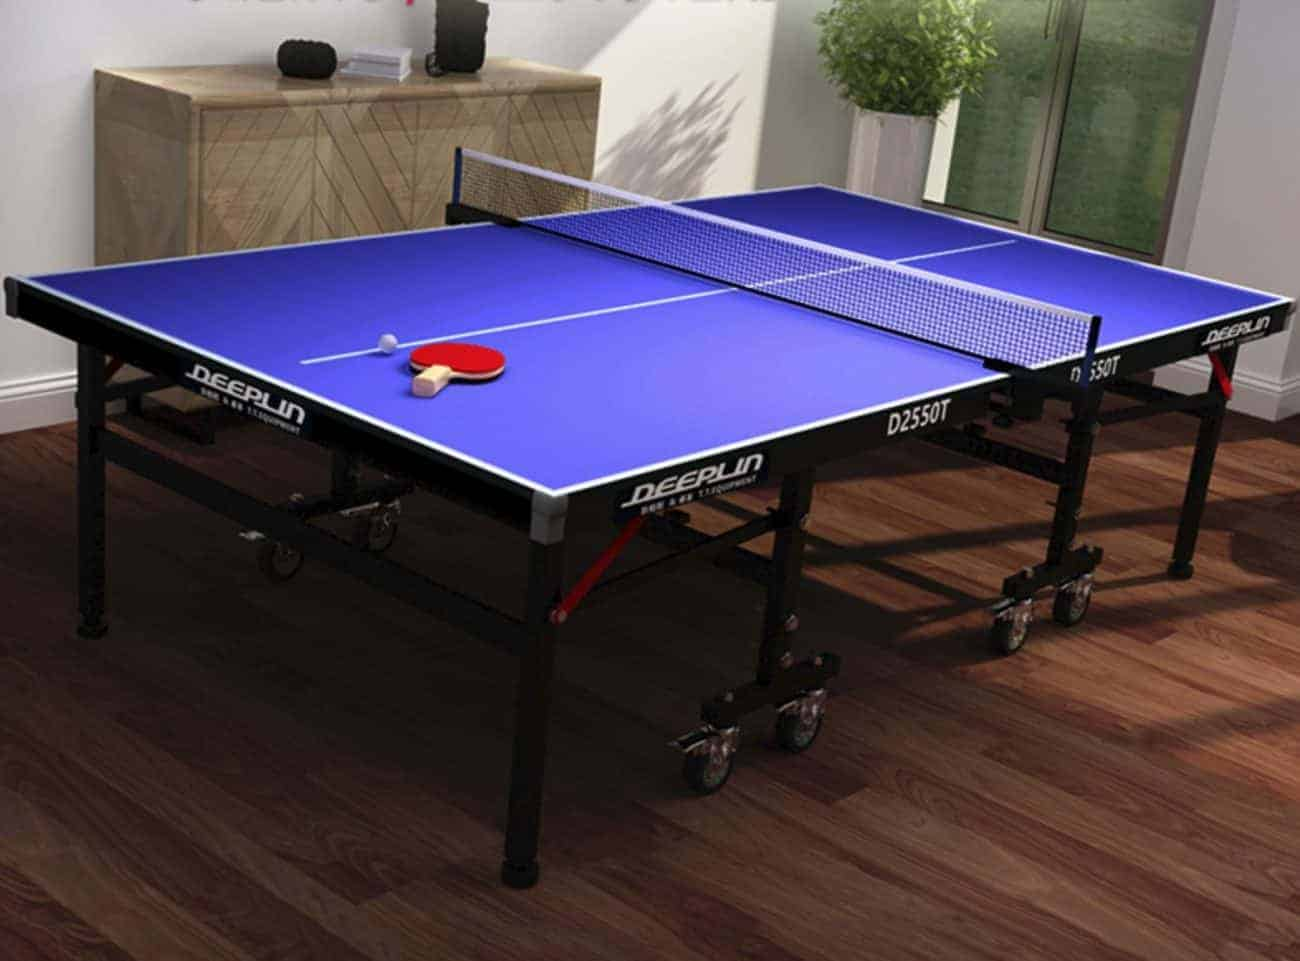 How to Choose the Best Table Tennis Table for Home